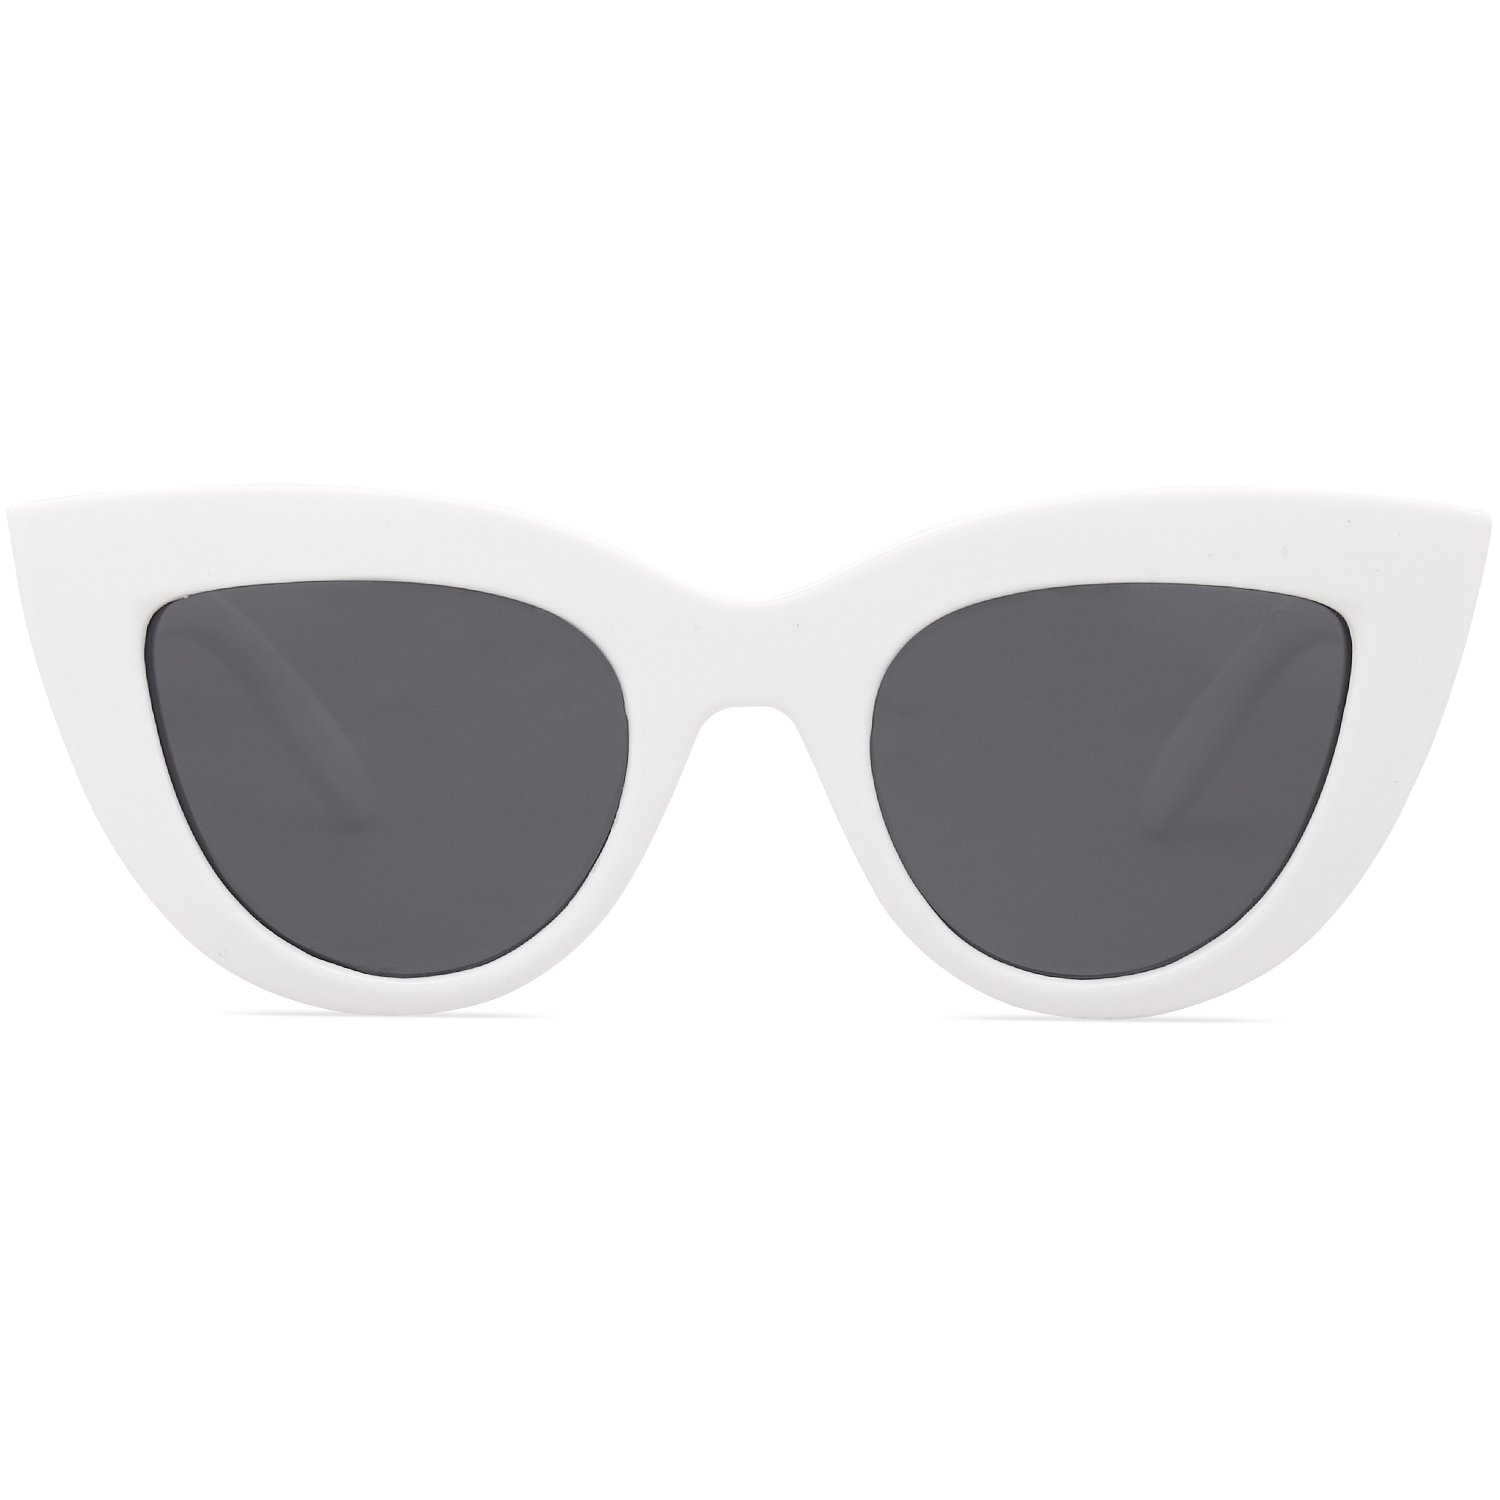 SOJOS Retro Vintage Cateye Sunglasses for Women Plastic Frame Mirrored Lens SJ2939 with White Frame/Grey Lens by SOJOS